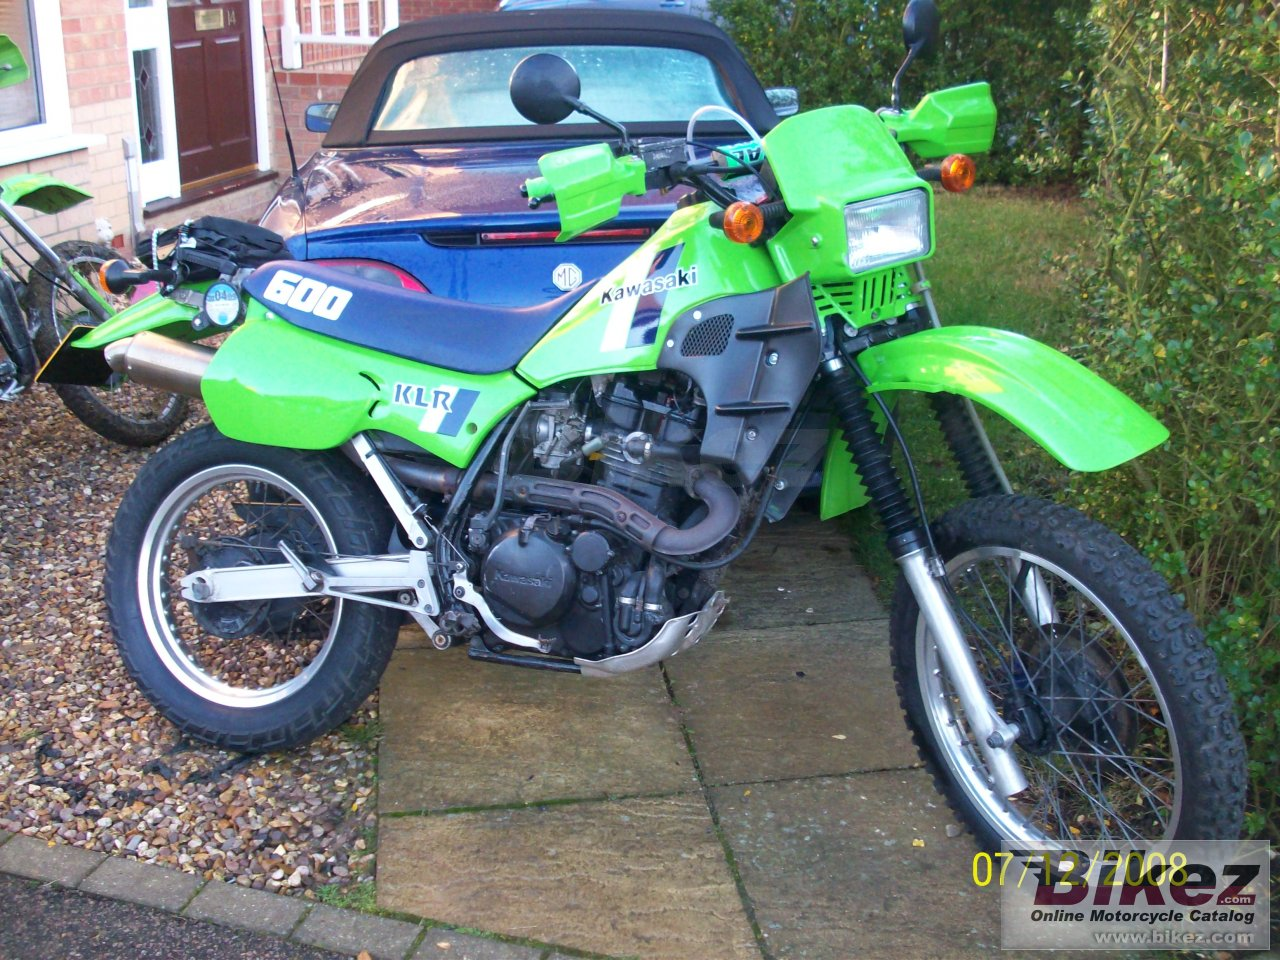 Big  klr 600 picture and wallpaper from Bikez.com